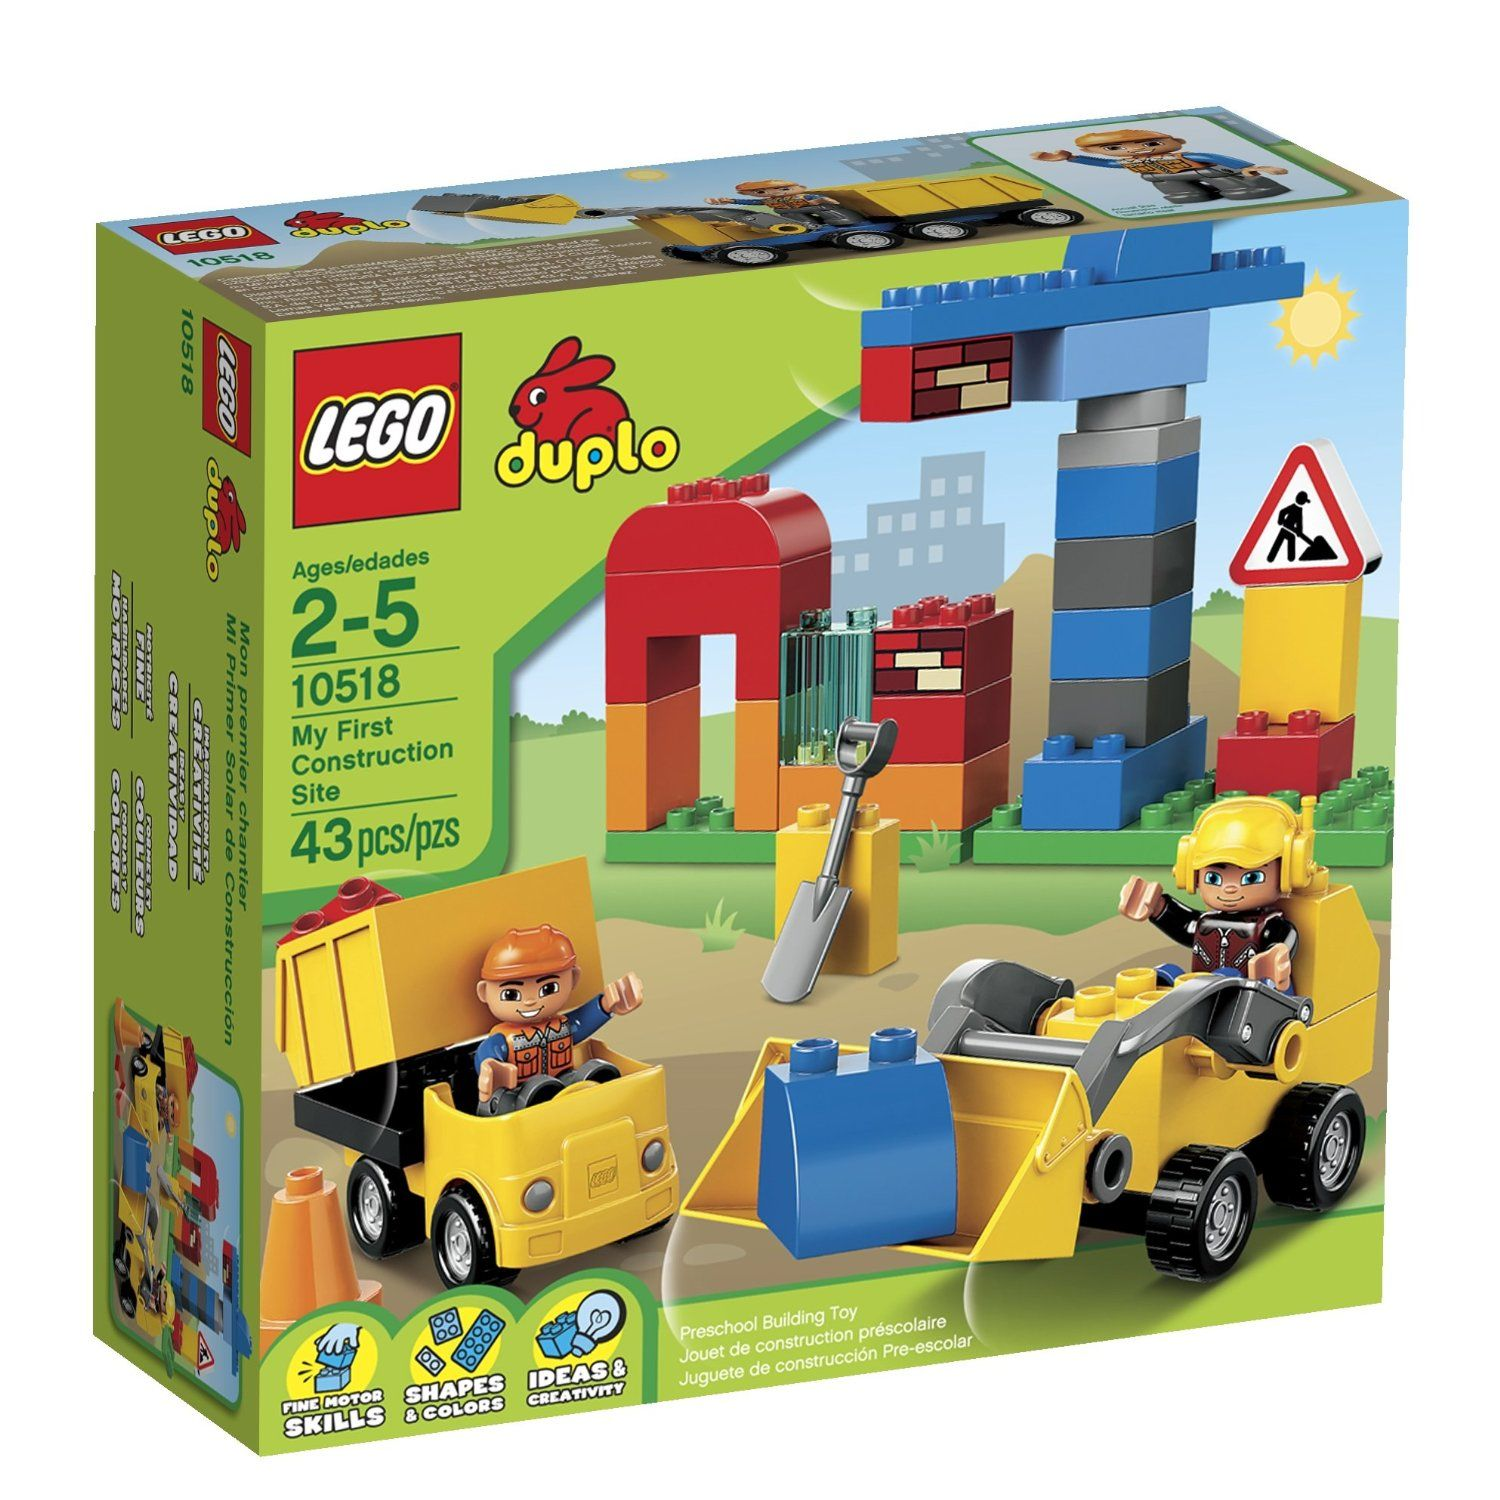 Best Gifts For 2 Year Old Boys In 2017 In 2020 Lego